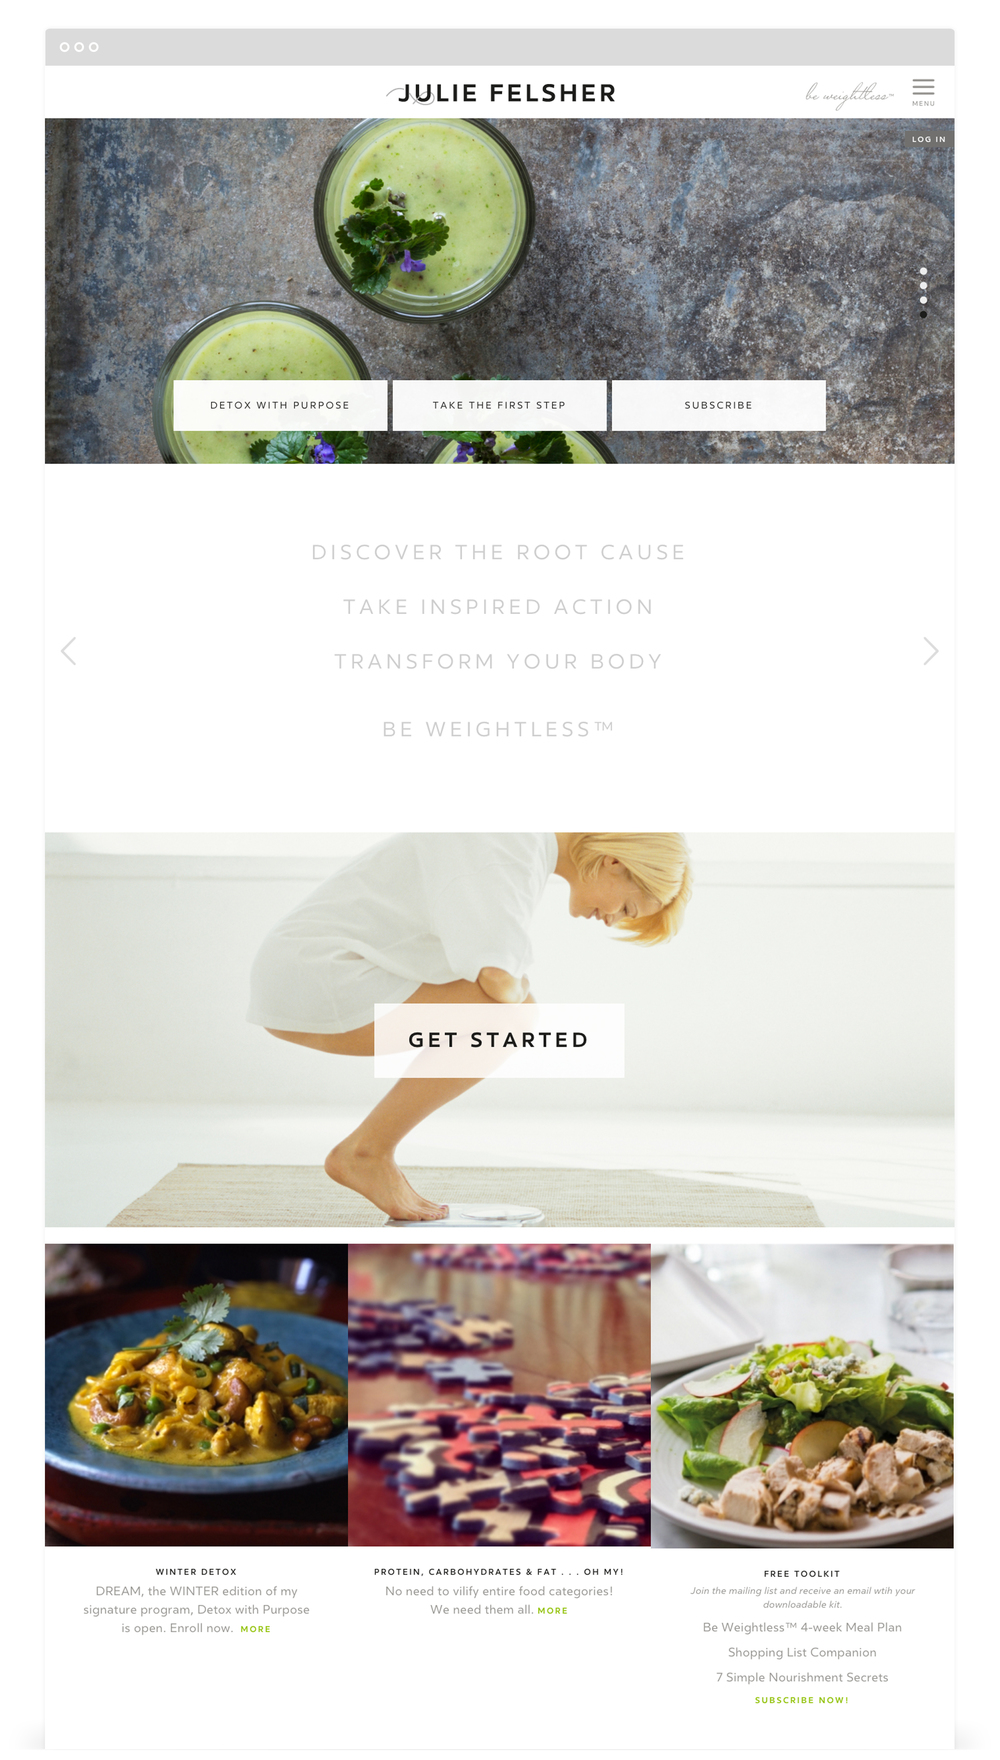 Second + West Website Development for Julie Felsher